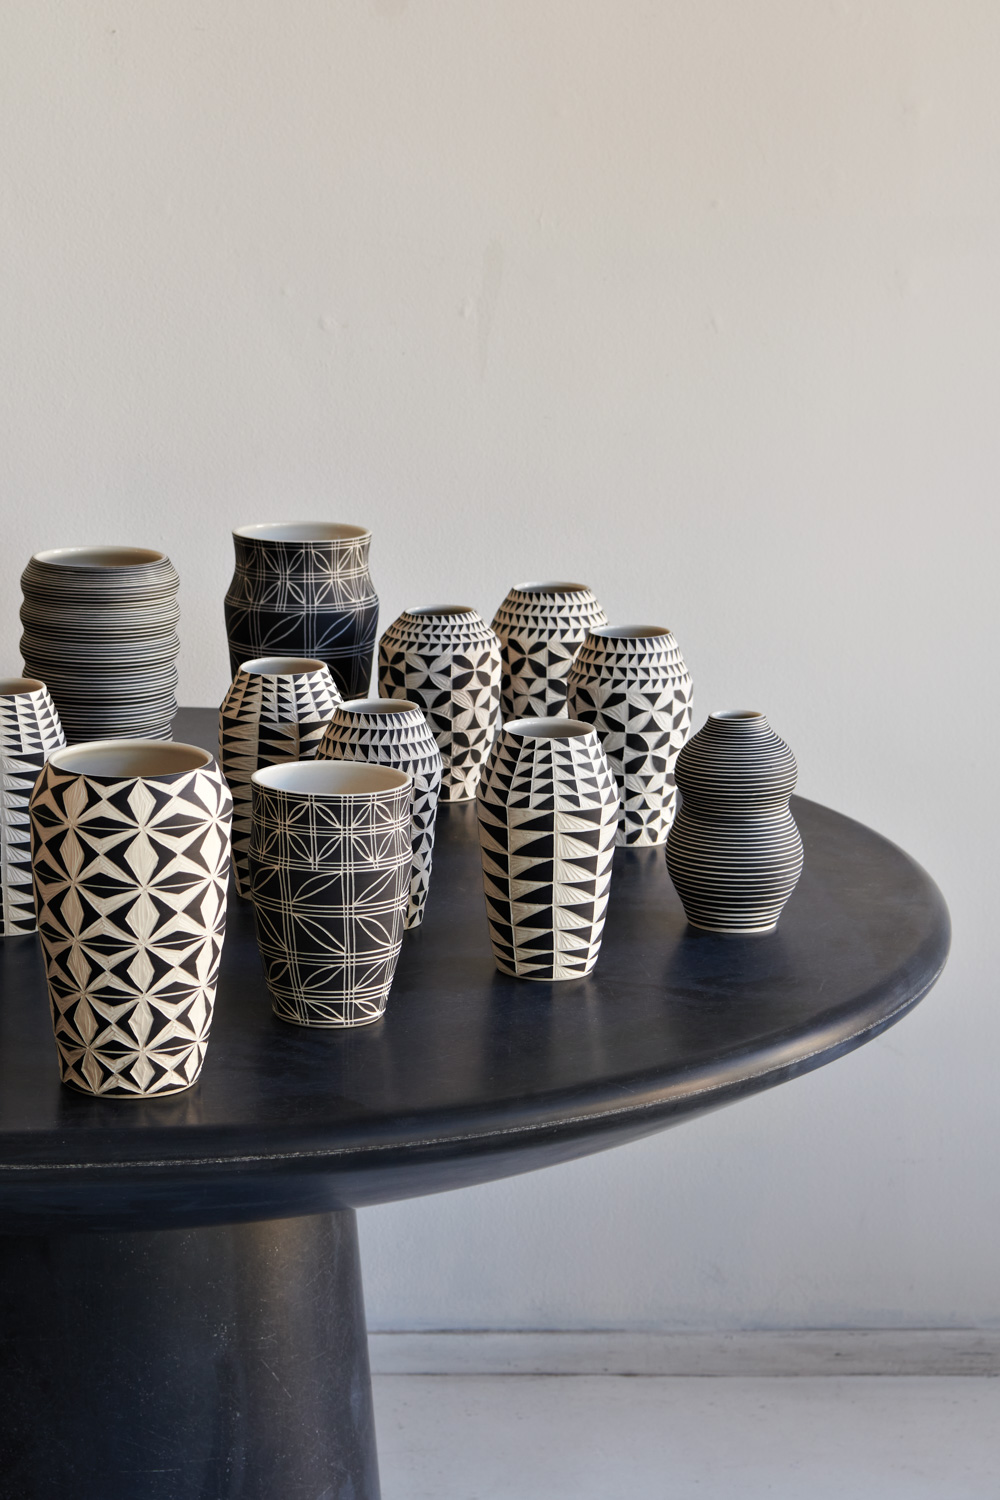 San Francisco home store March vases